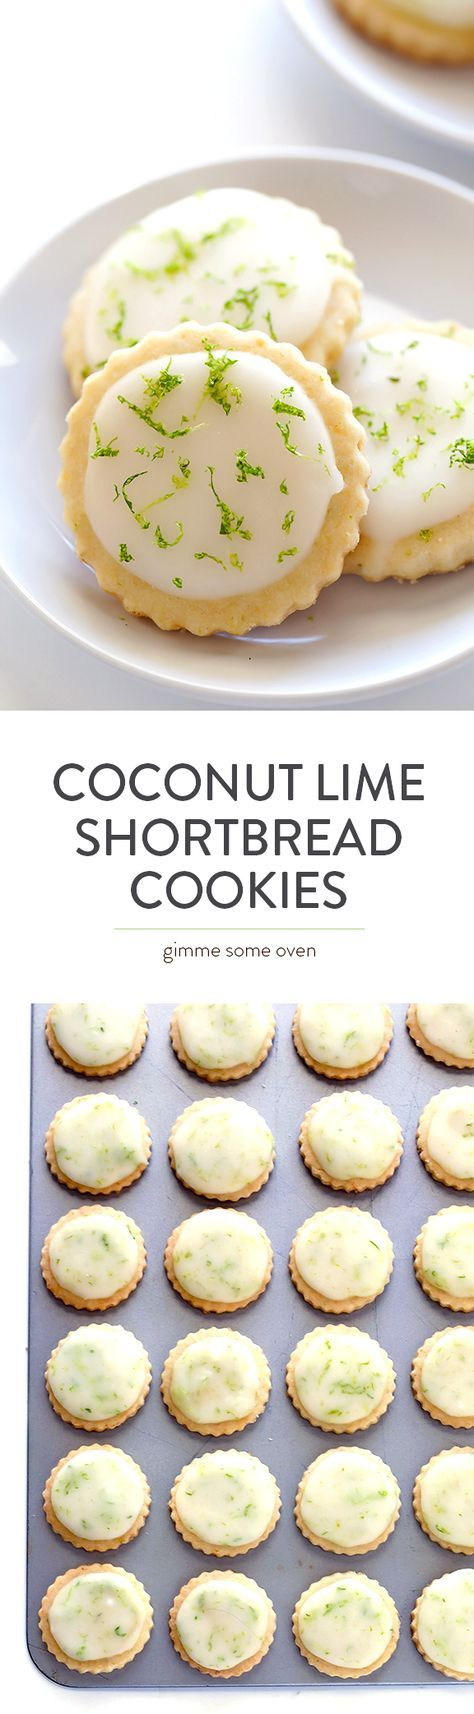 coconut lime shortbread cookies lime recipes vegan butter fresh lime ...